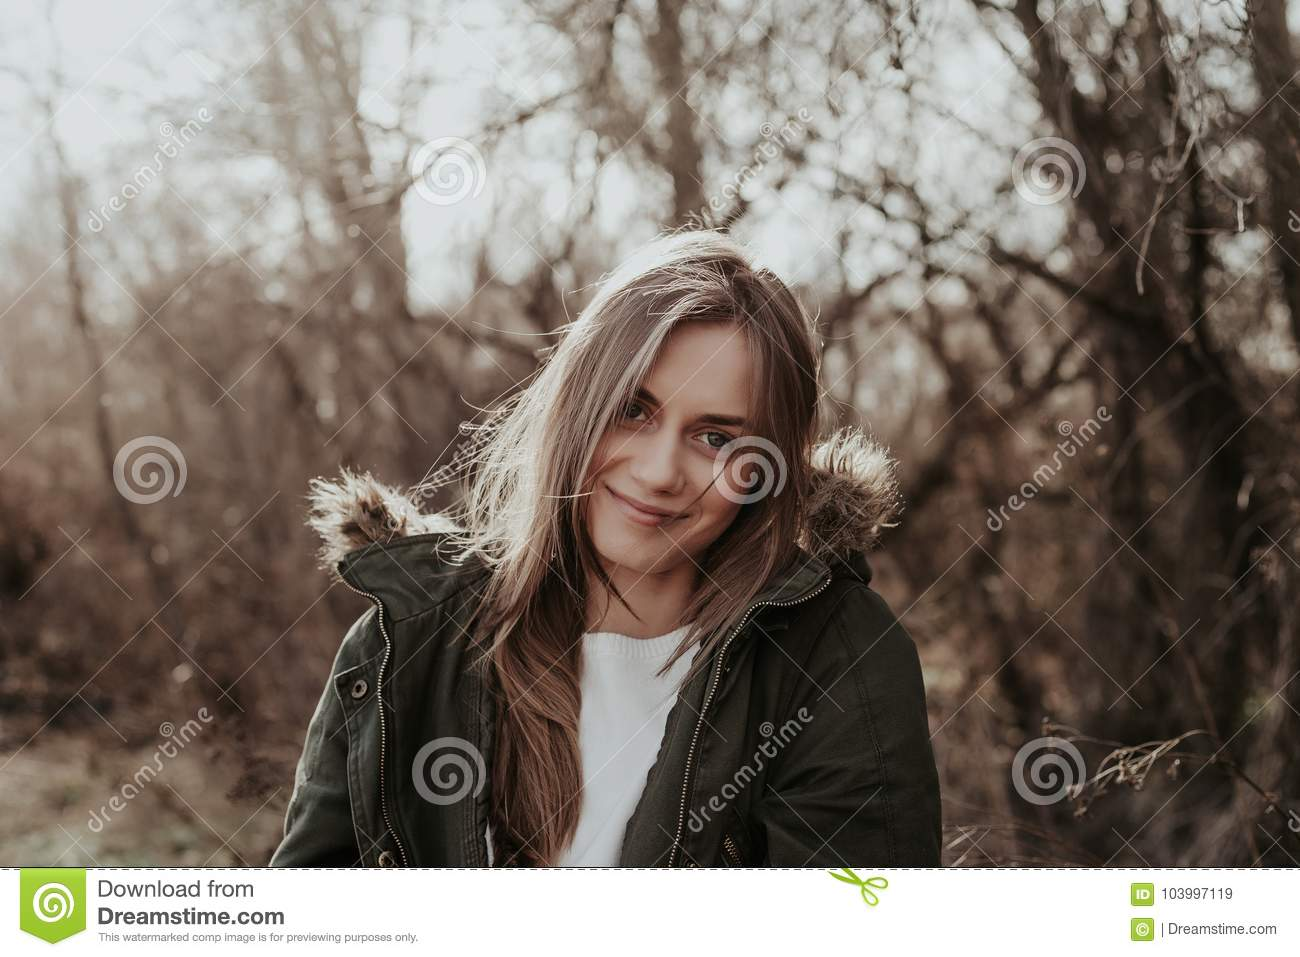 Pretty woman in warm jacket with fur posint at camera outdoor